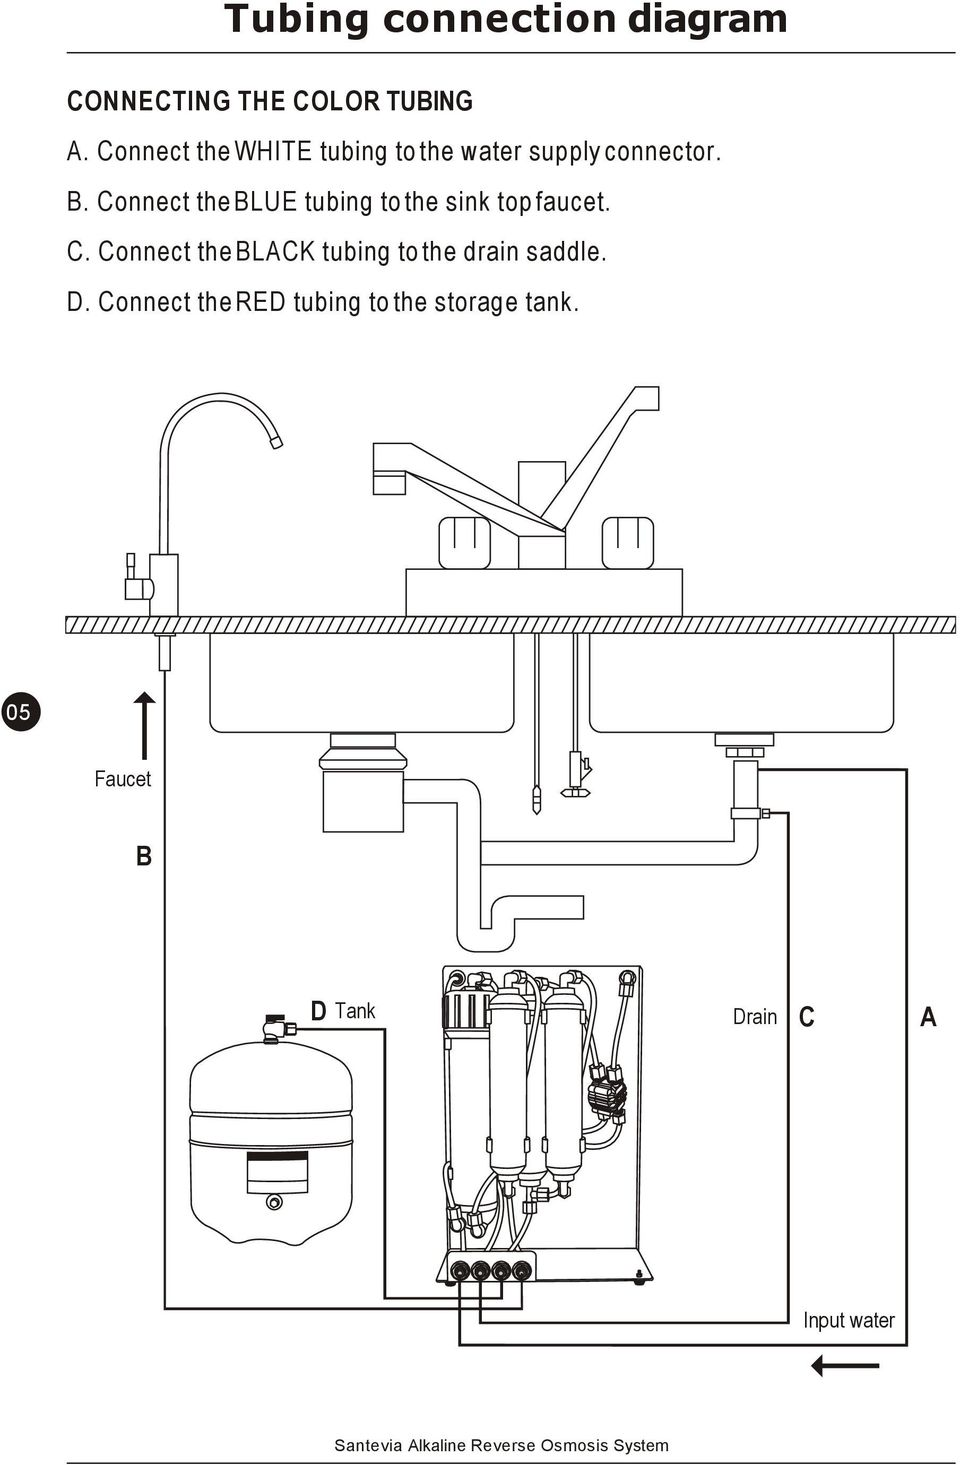 Users manual alkaline reverse osmosis system pdf connect the blue tubing to the sink top faucet c publicscrutiny Choice Image